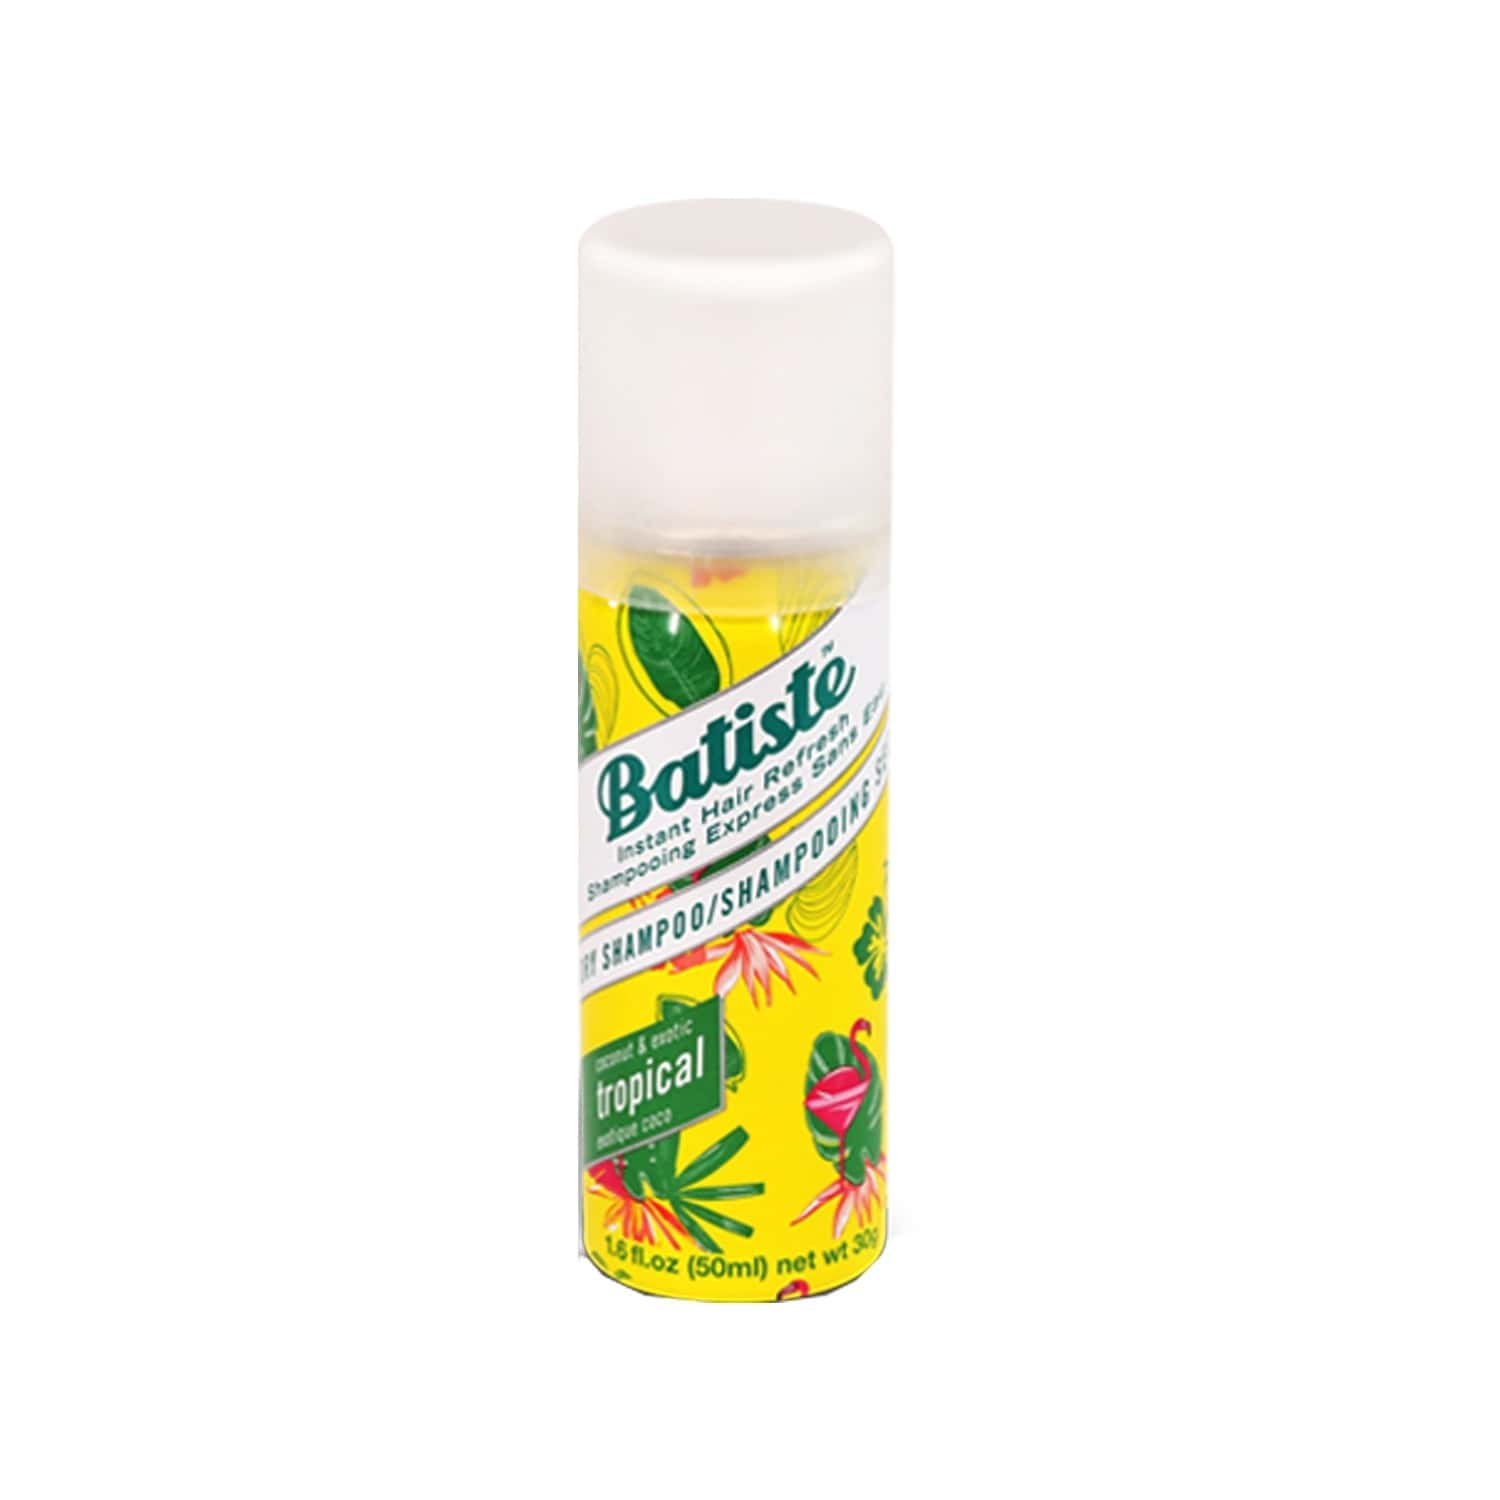 Batiste Instant Hair Refresh Dry Shampoo - Coconut & Exotic Tropical - 50ml